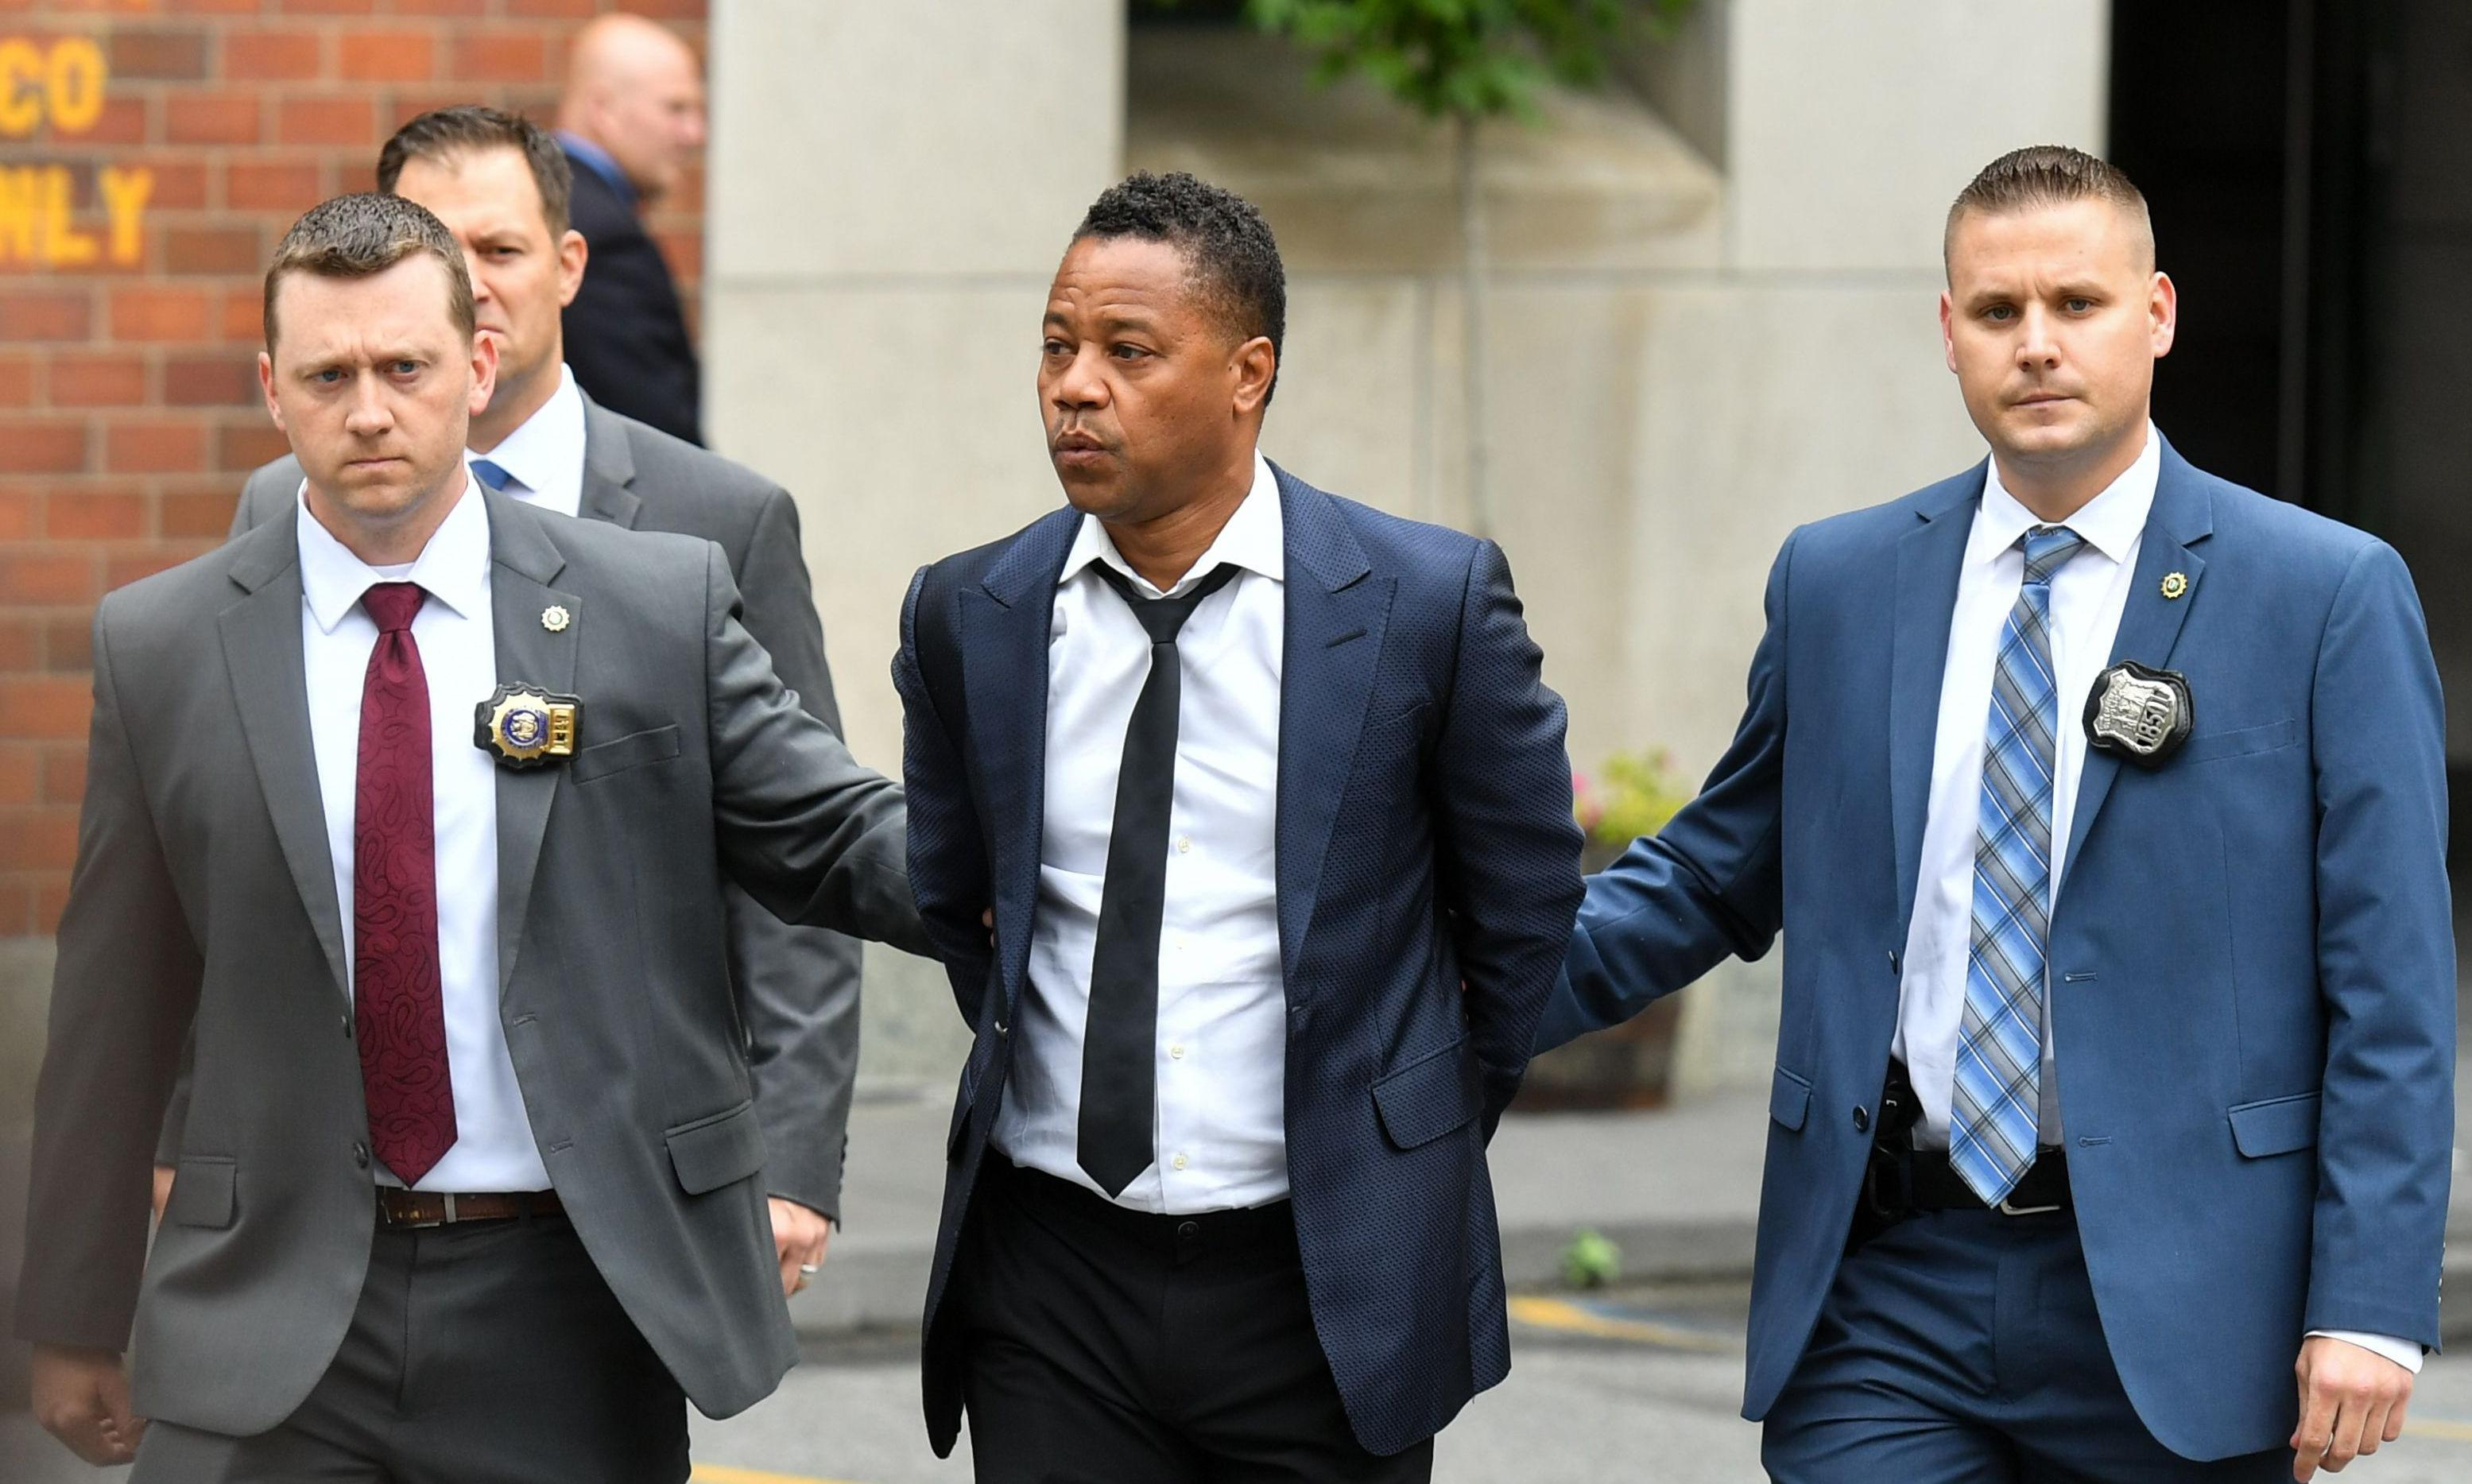 Cuba Gooding Jr charged with forcible touching after incident in New York